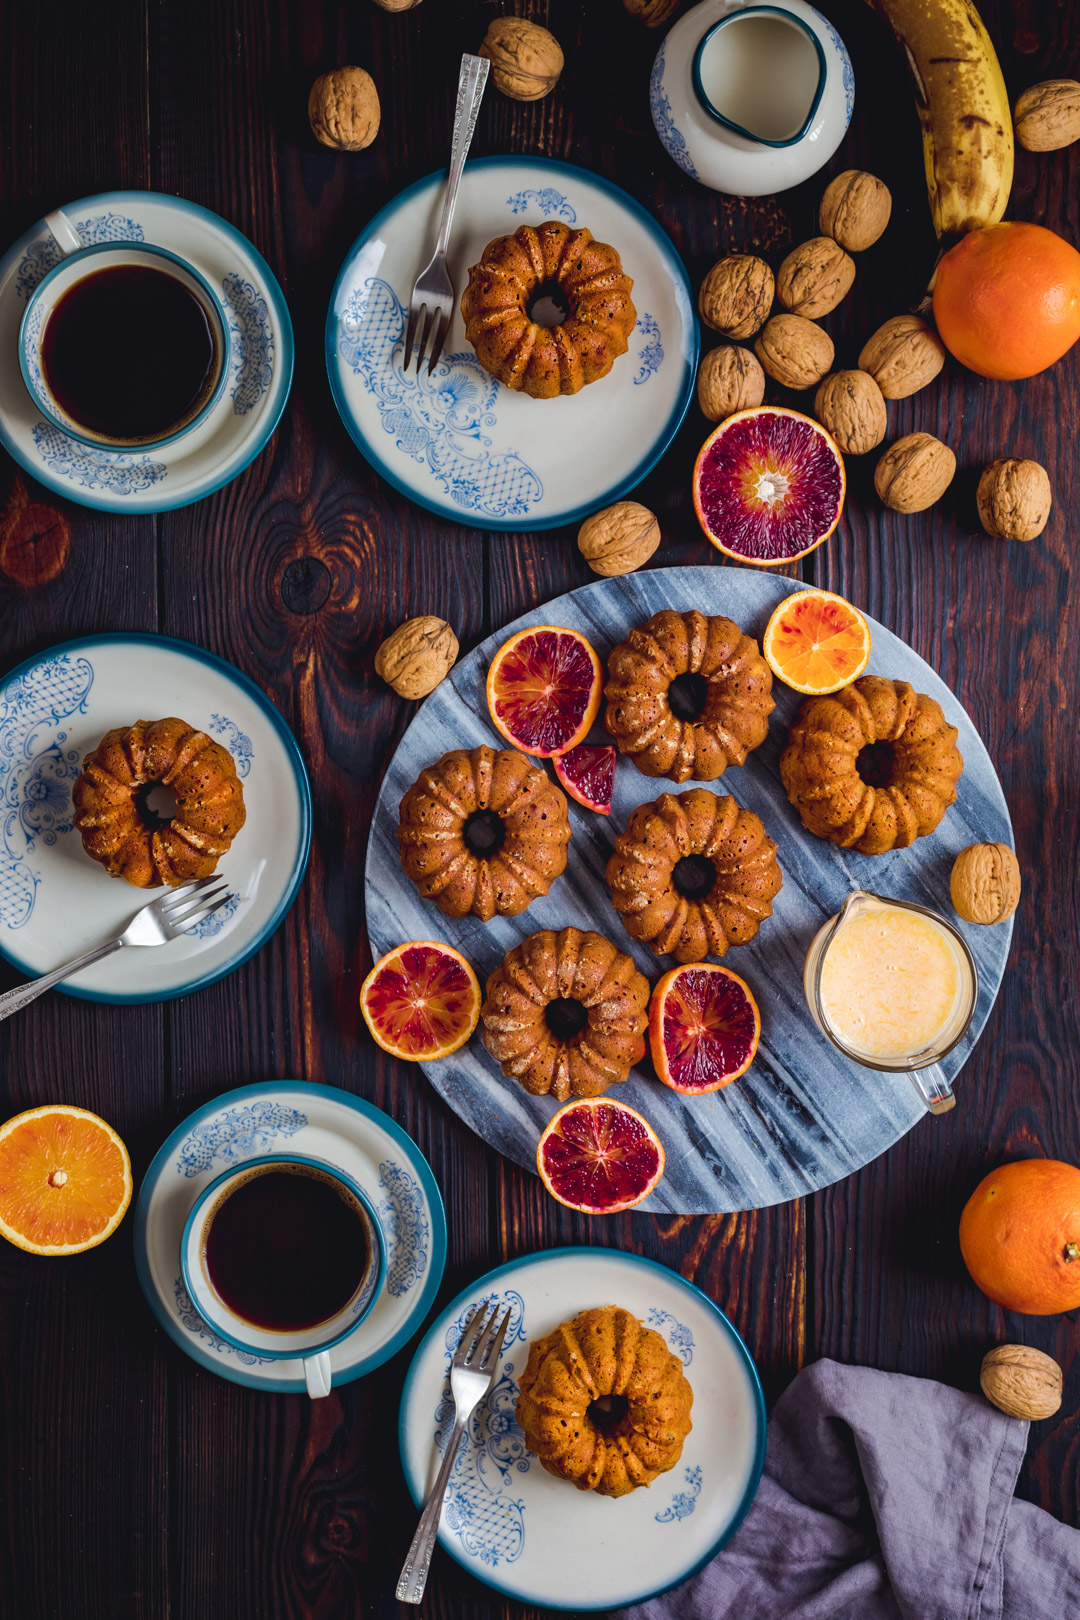 Carrot mini Bundt Cakes with walnuts and hint of blood oranges flavor